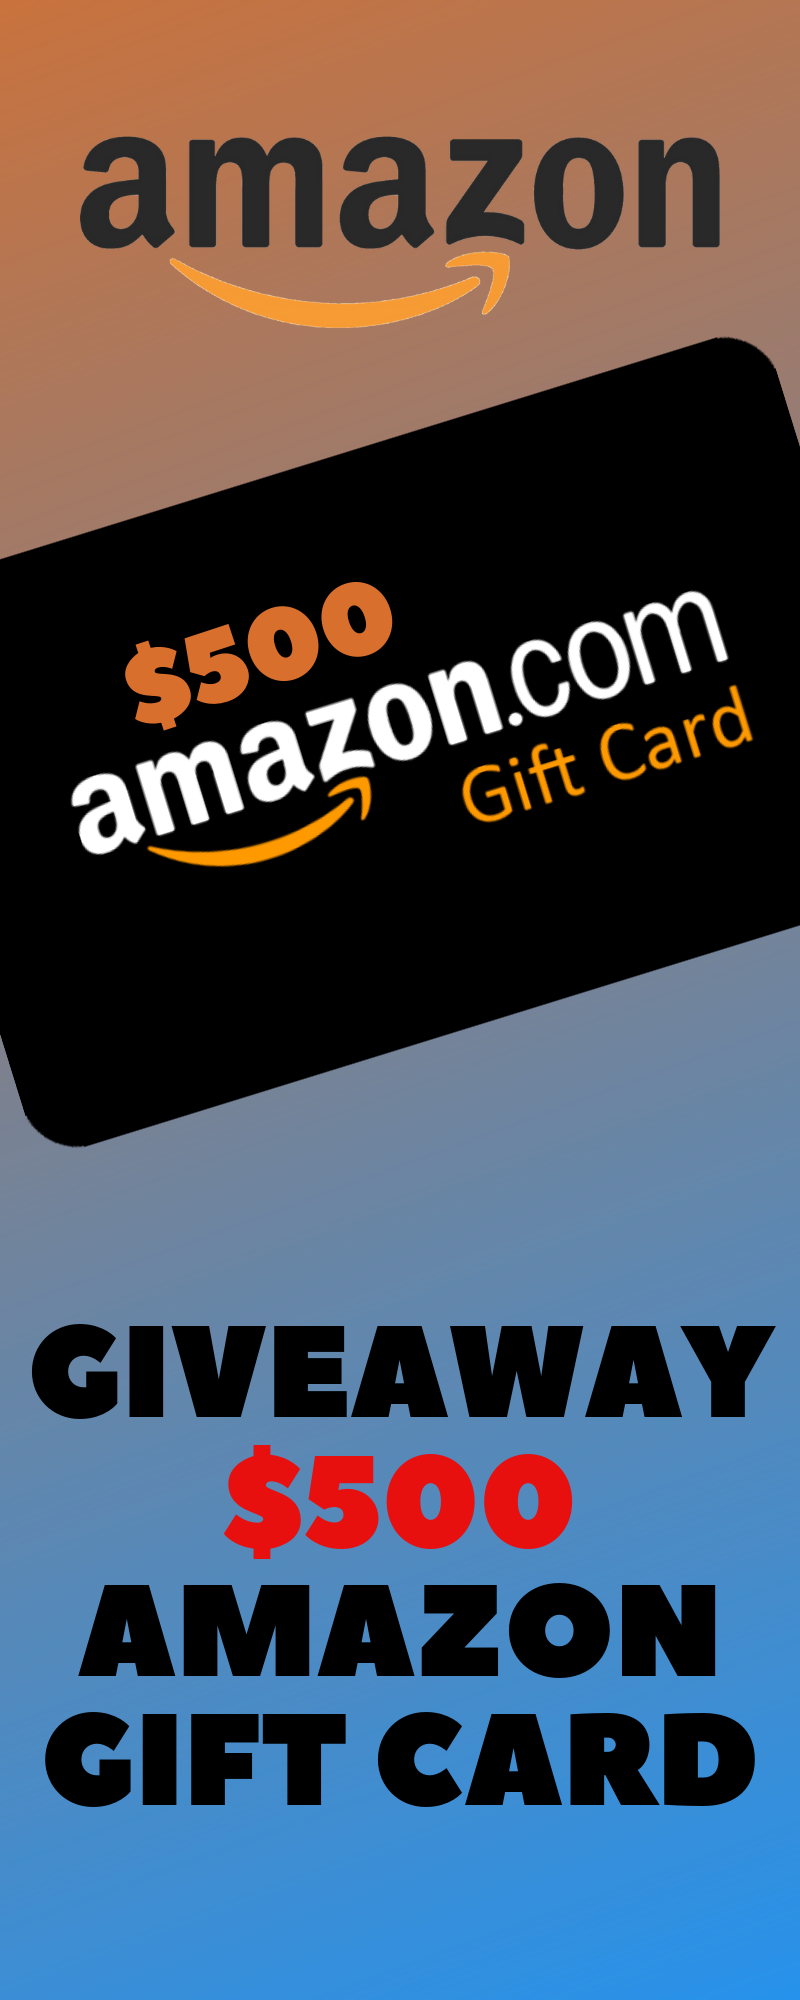 Win 500 Amazon Gift Card Amazon Gift Cards Amazon Gift Card Free Best Gift Cards